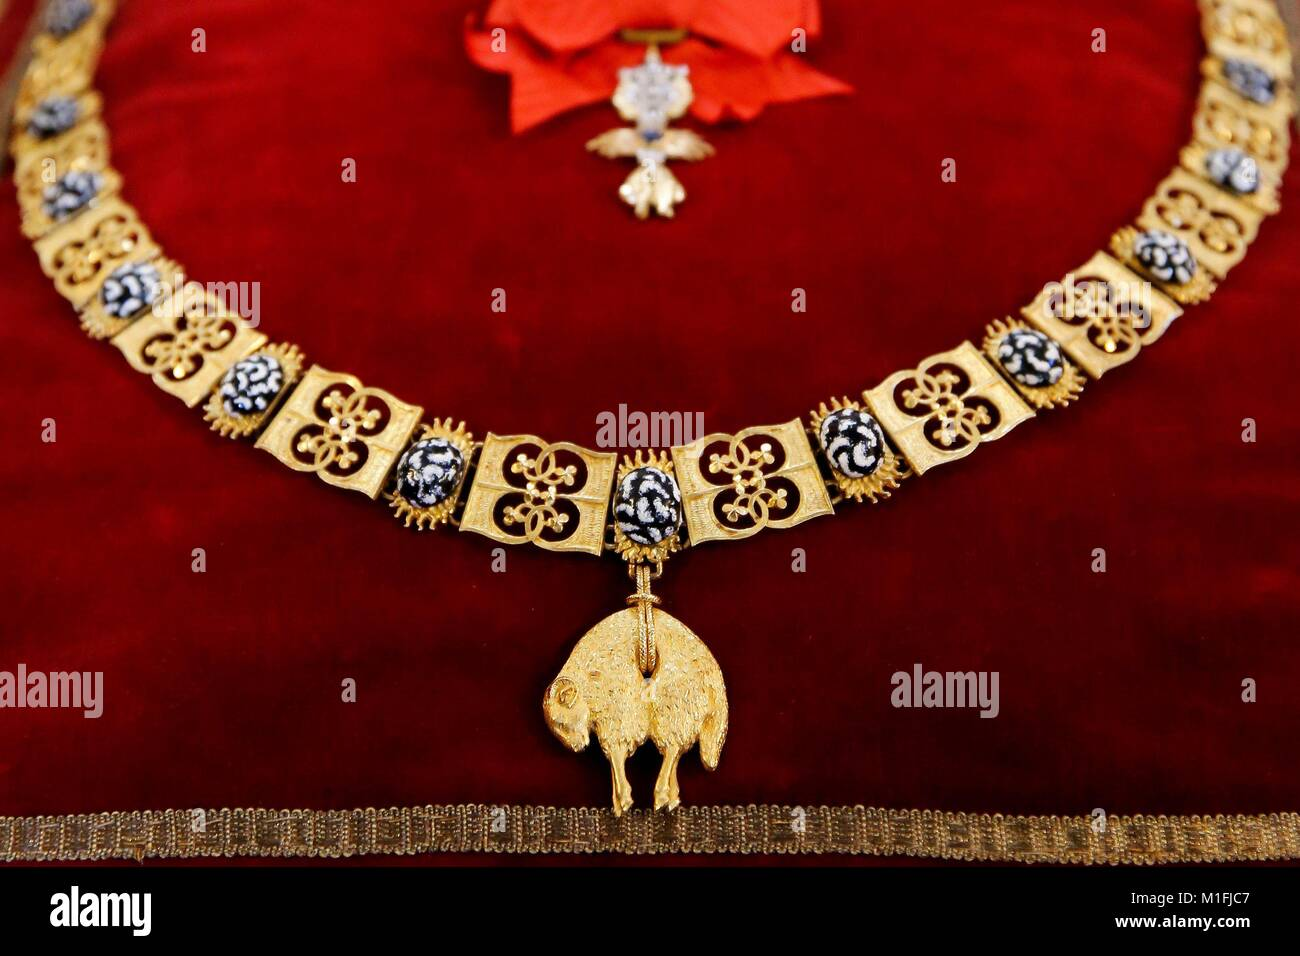 Order of the golden fleece stock photos order of the golden detail of the order of the golden fleece that king felipe vi of spain has awarded biocorpaavc Choice Image